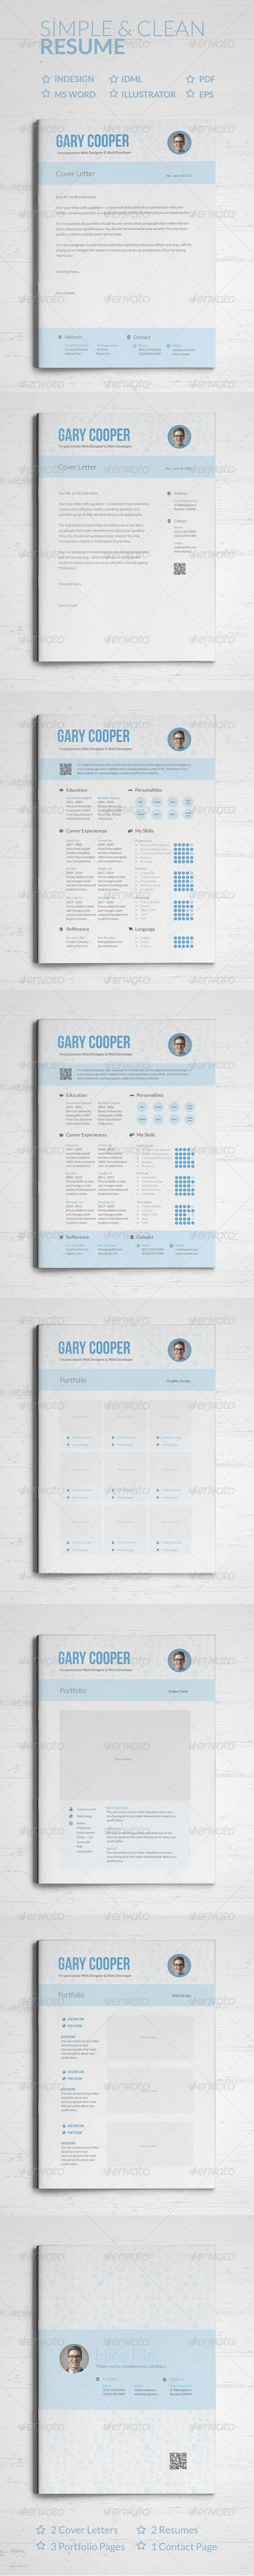 62 Best Business Documents Images On Pinterest Editorial Design